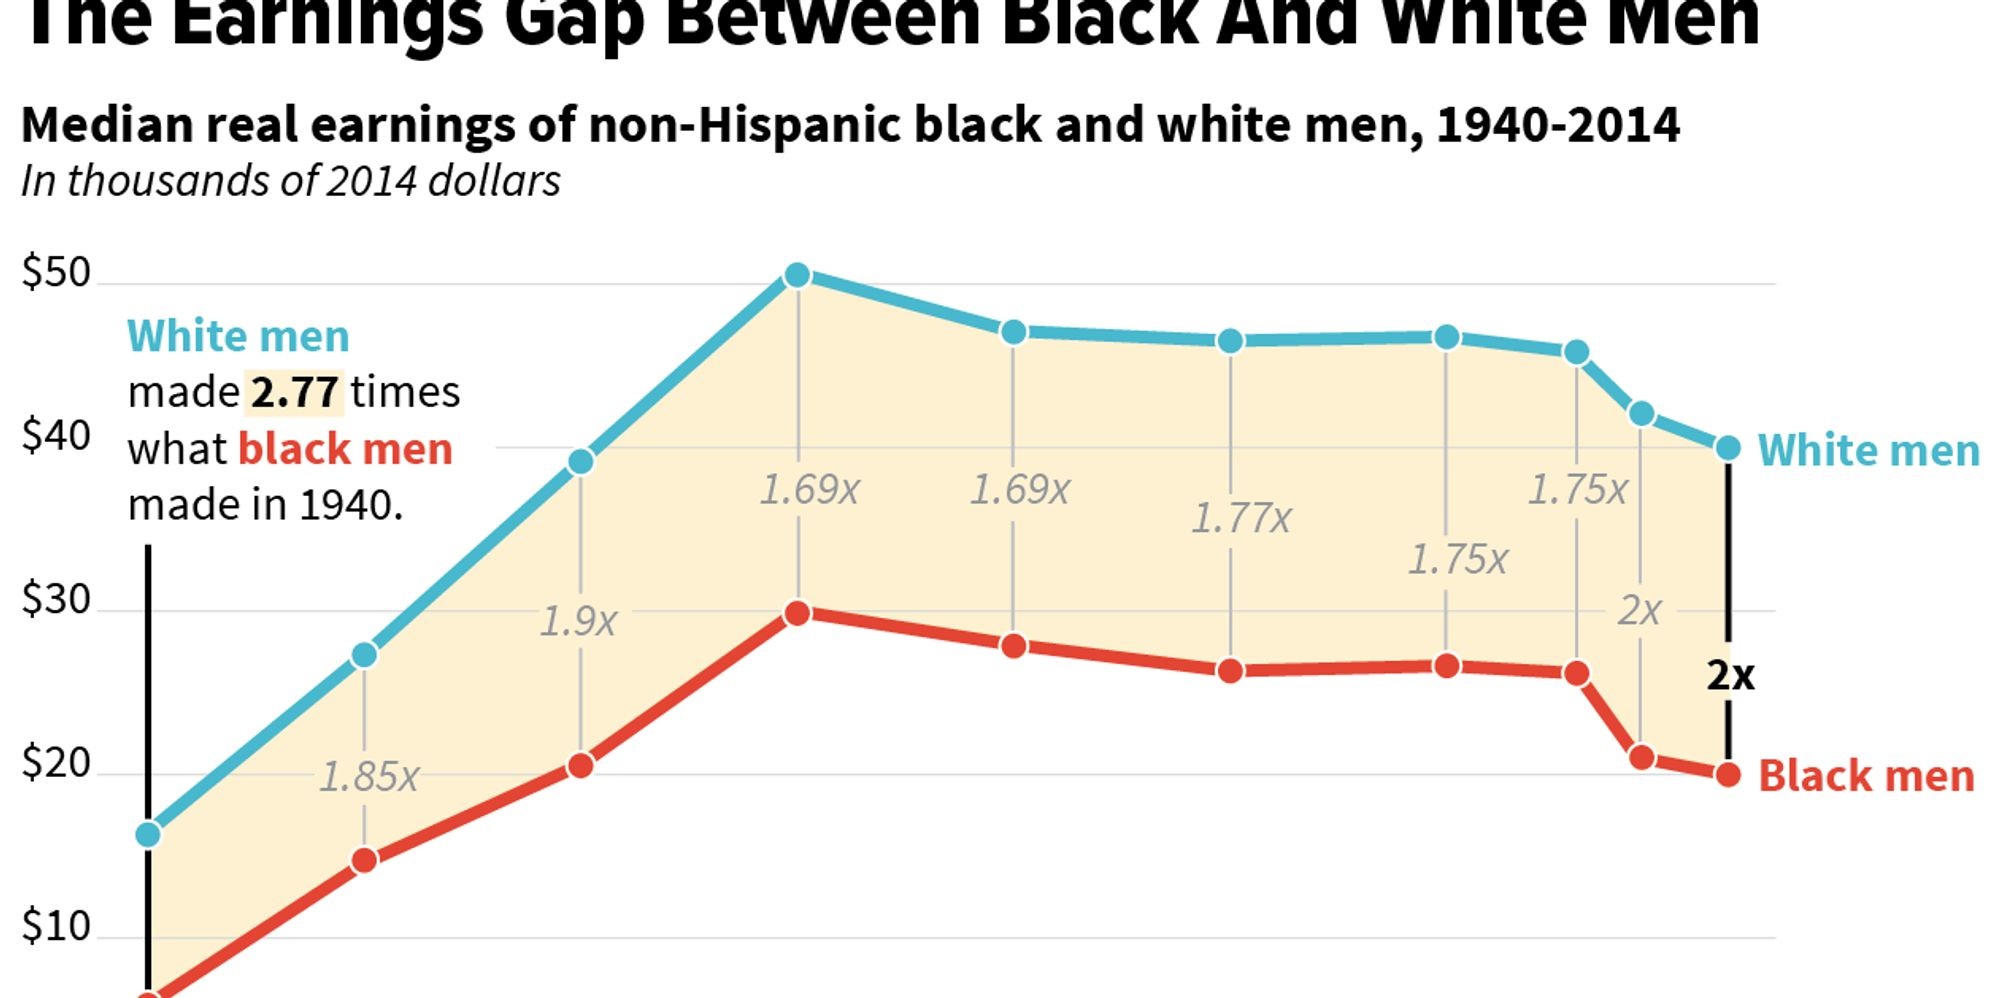 Working-Class Whites Still Have It A Whole Lot Better Than Their Black Counterparts